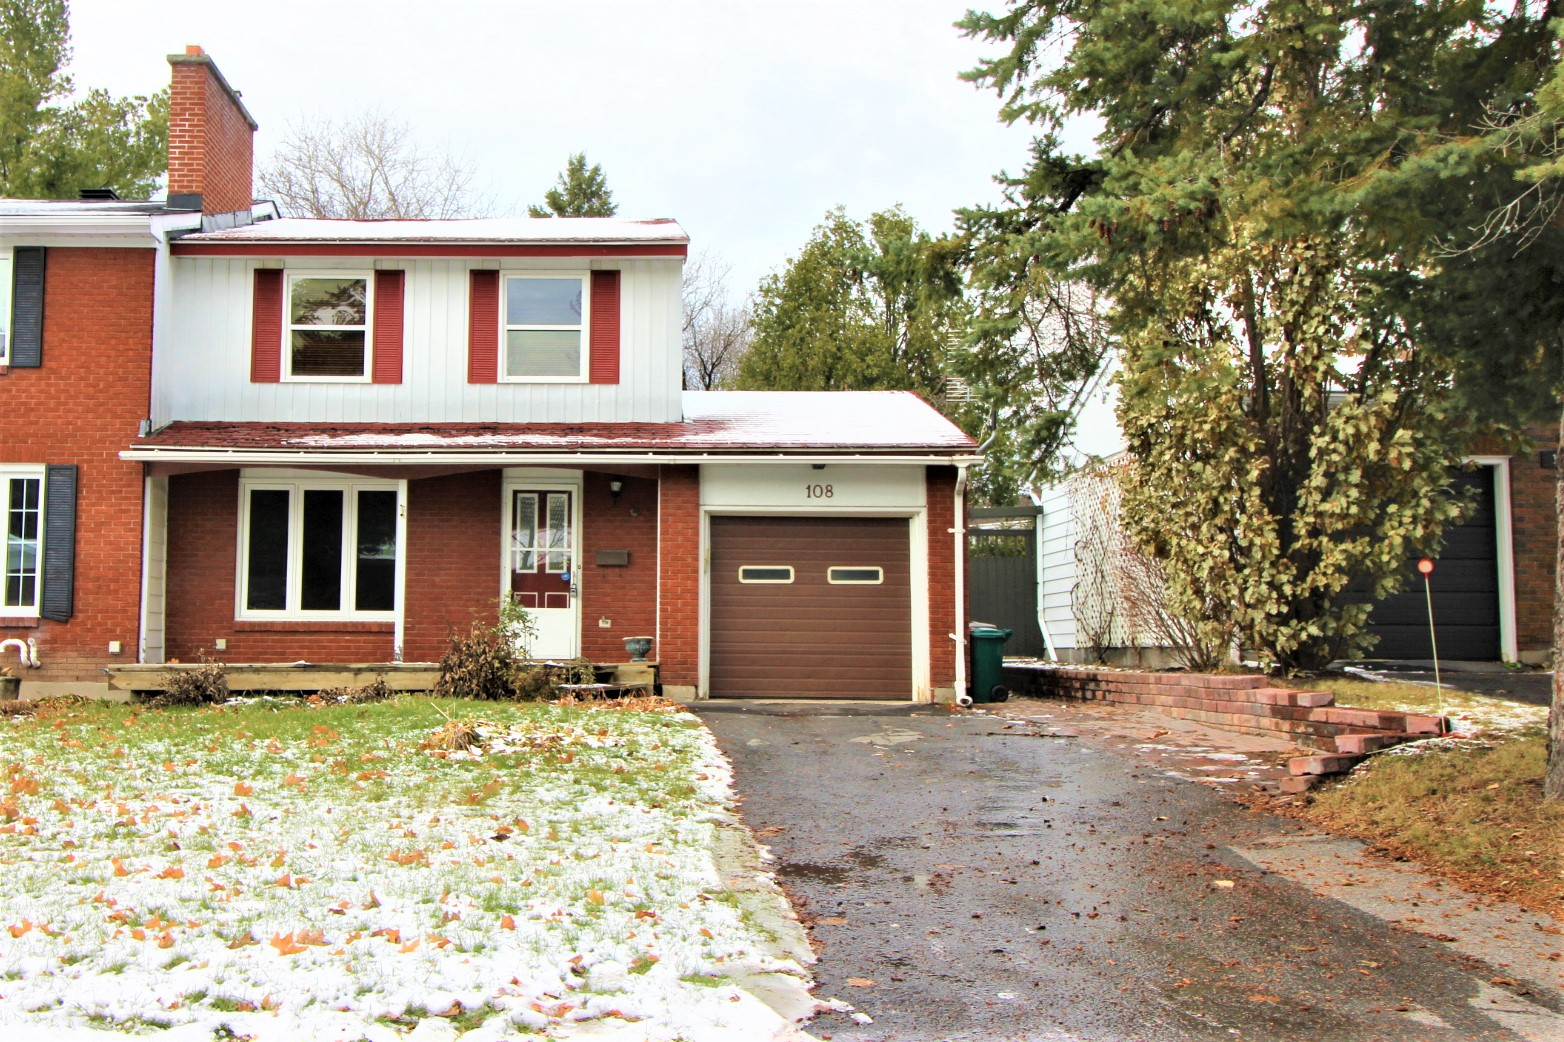 108 Hobart Cres - Semi-Detached with Fully Finished Basement in popular Trent Village!